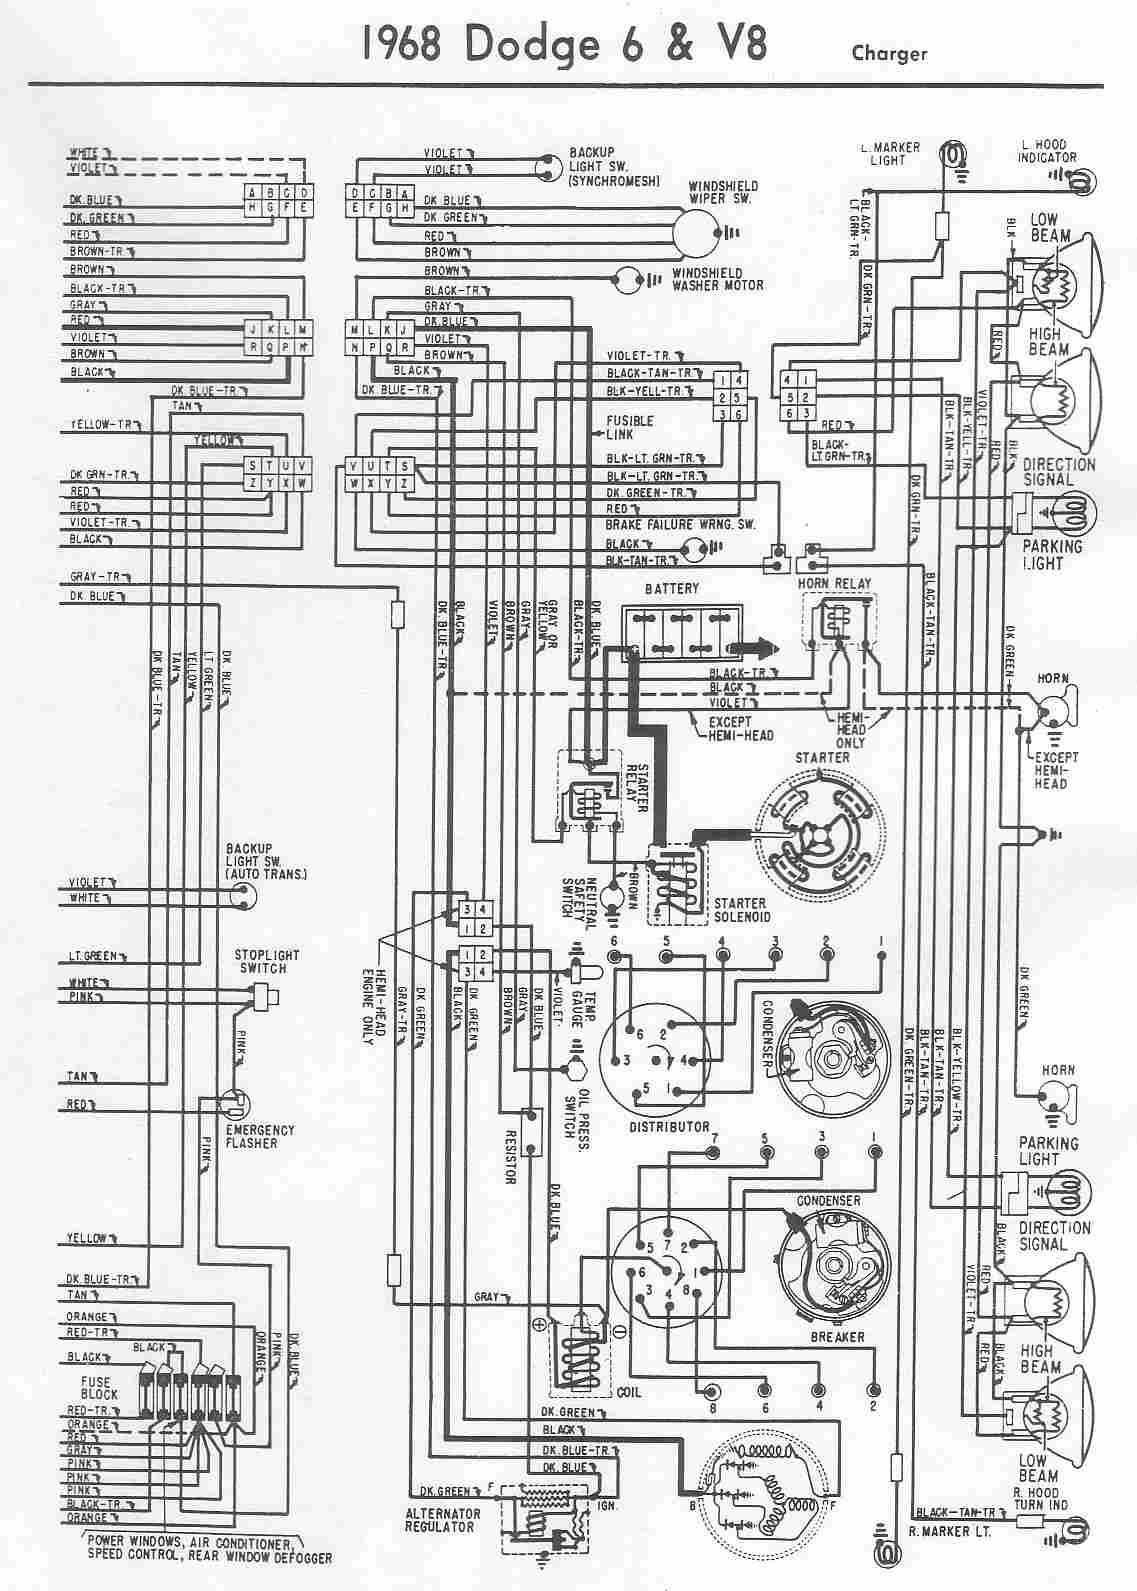 hight resolution of 1966 dodge dart ignition wiring diagram wiring diagram source rh 13 1 2 logistra net de 1972 dodge challenger ignition wiring diagram 1972 dodge dart demon